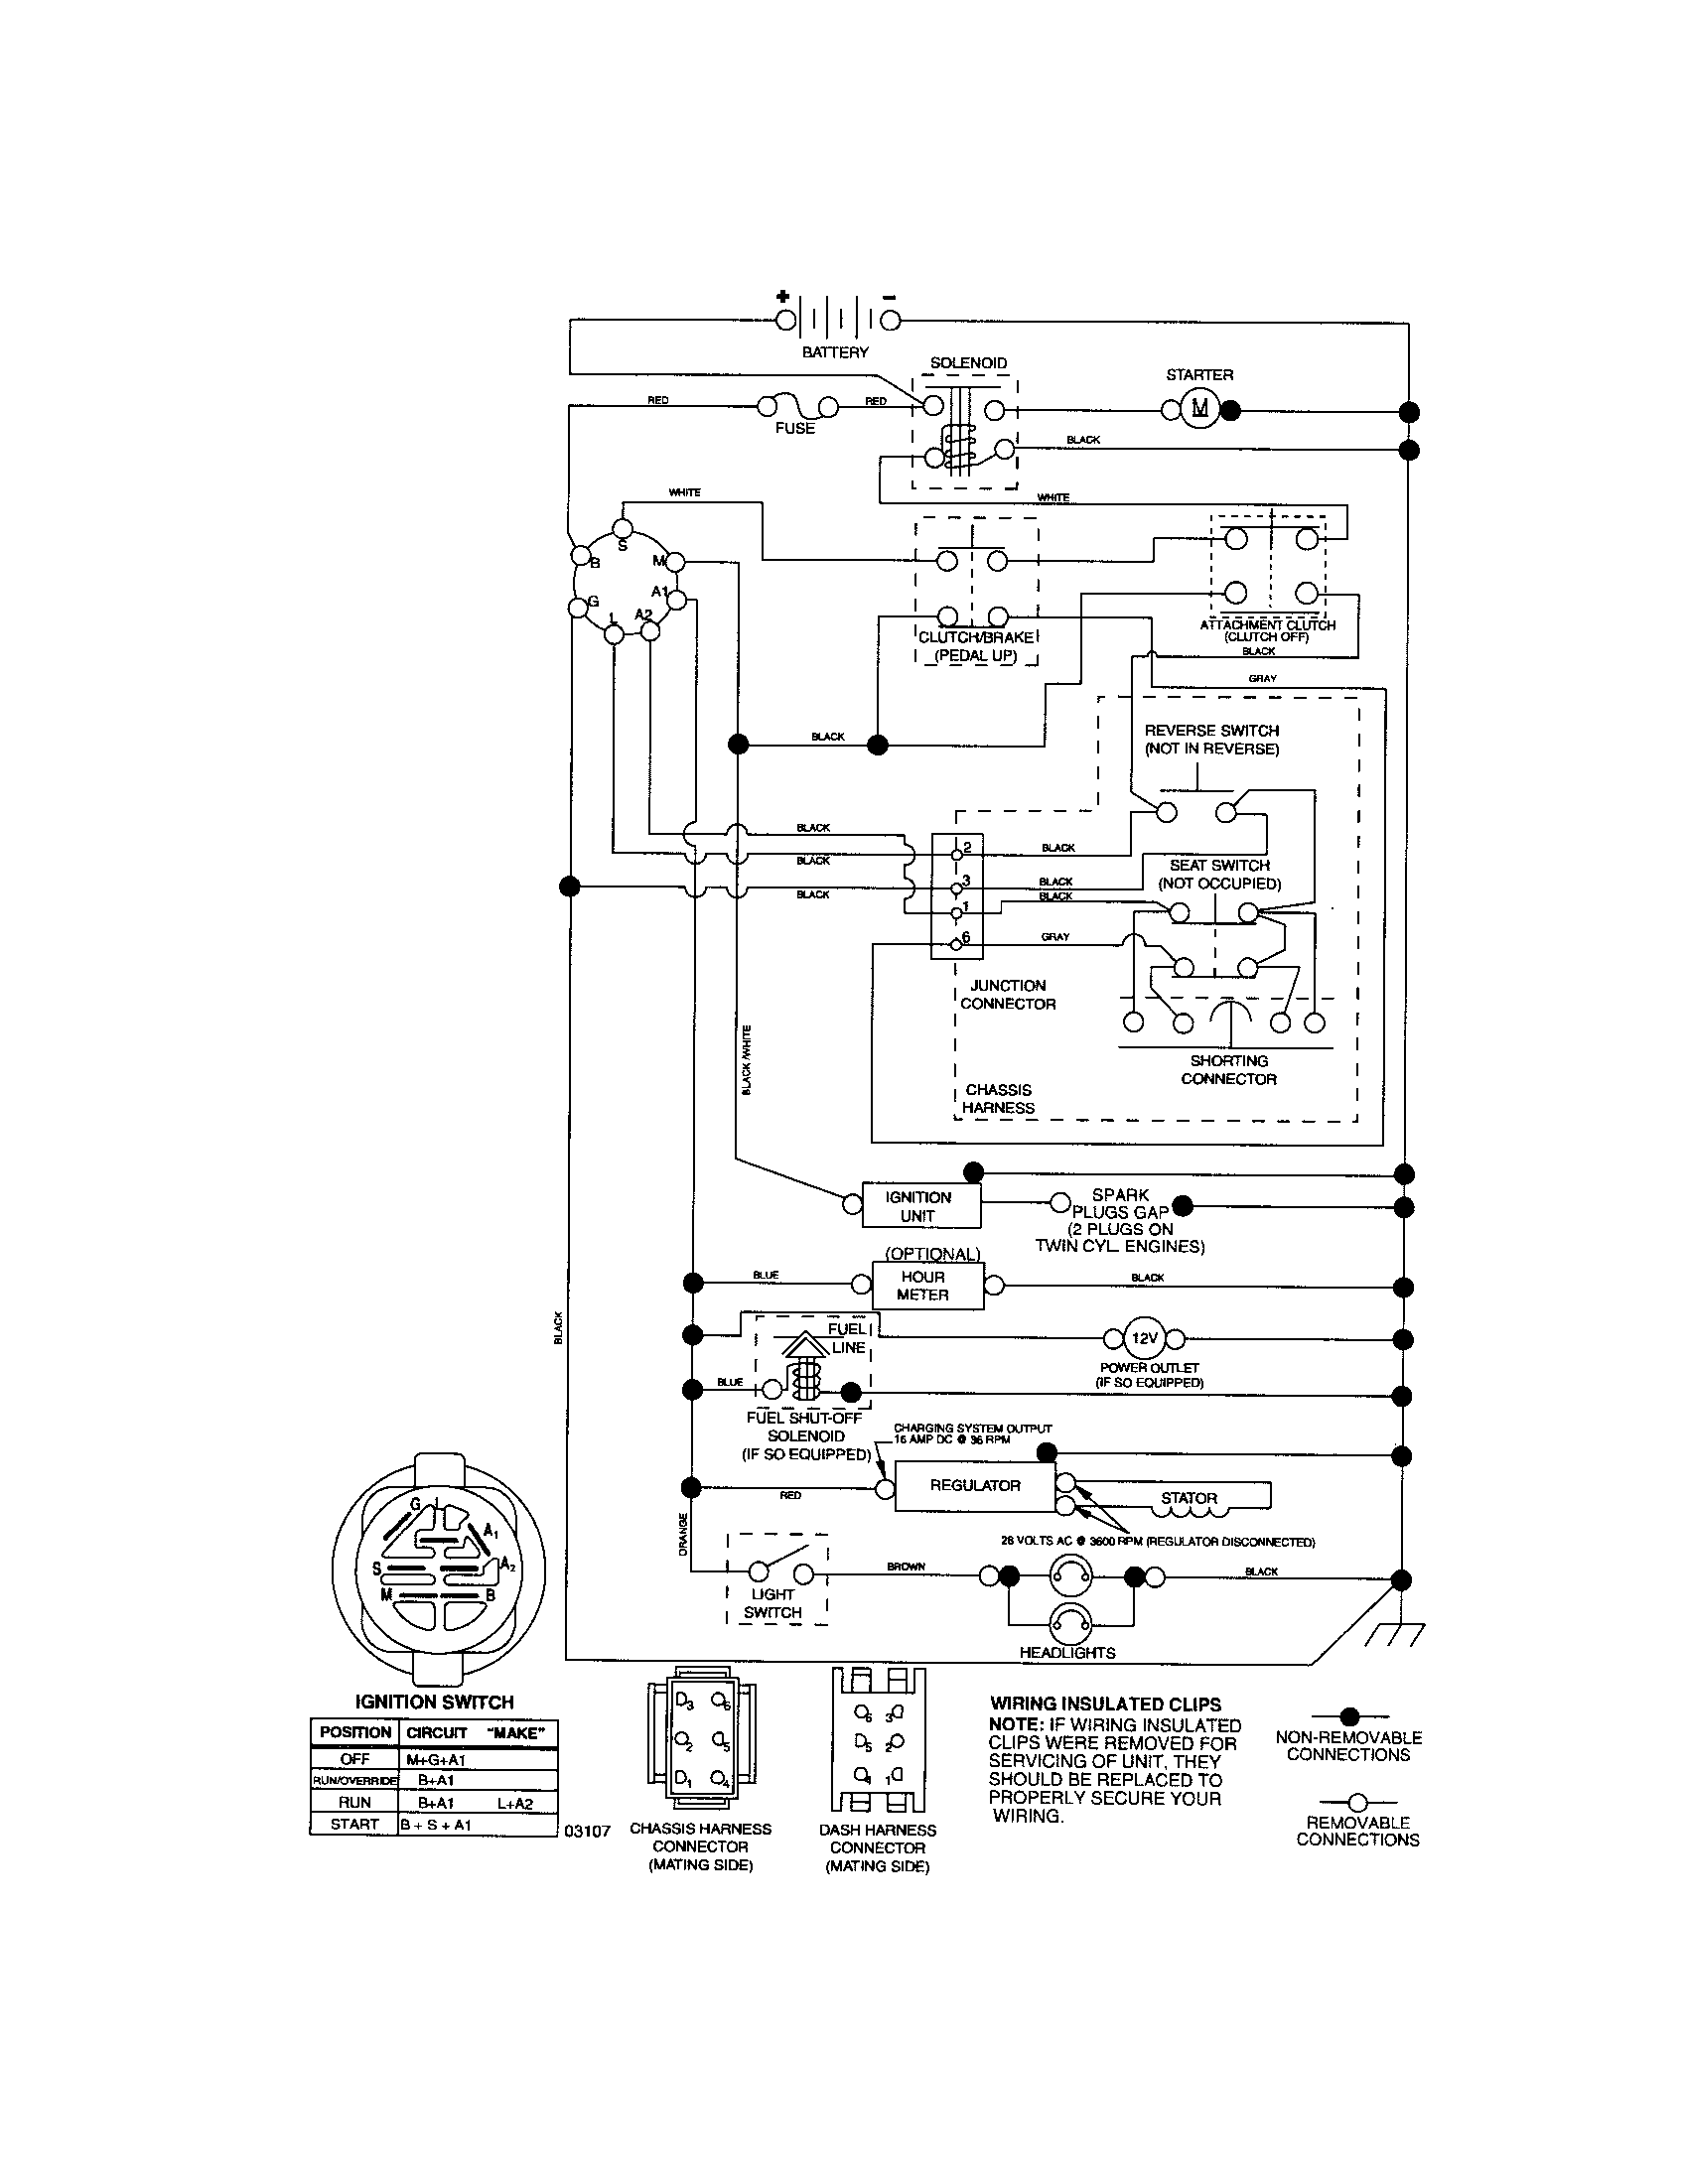 6af5f1447fd13c8443376822ddc1e105 craftsman riding mower electrical diagram wiring diagram Universal Wiring Harness Diagram at crackthecode.co